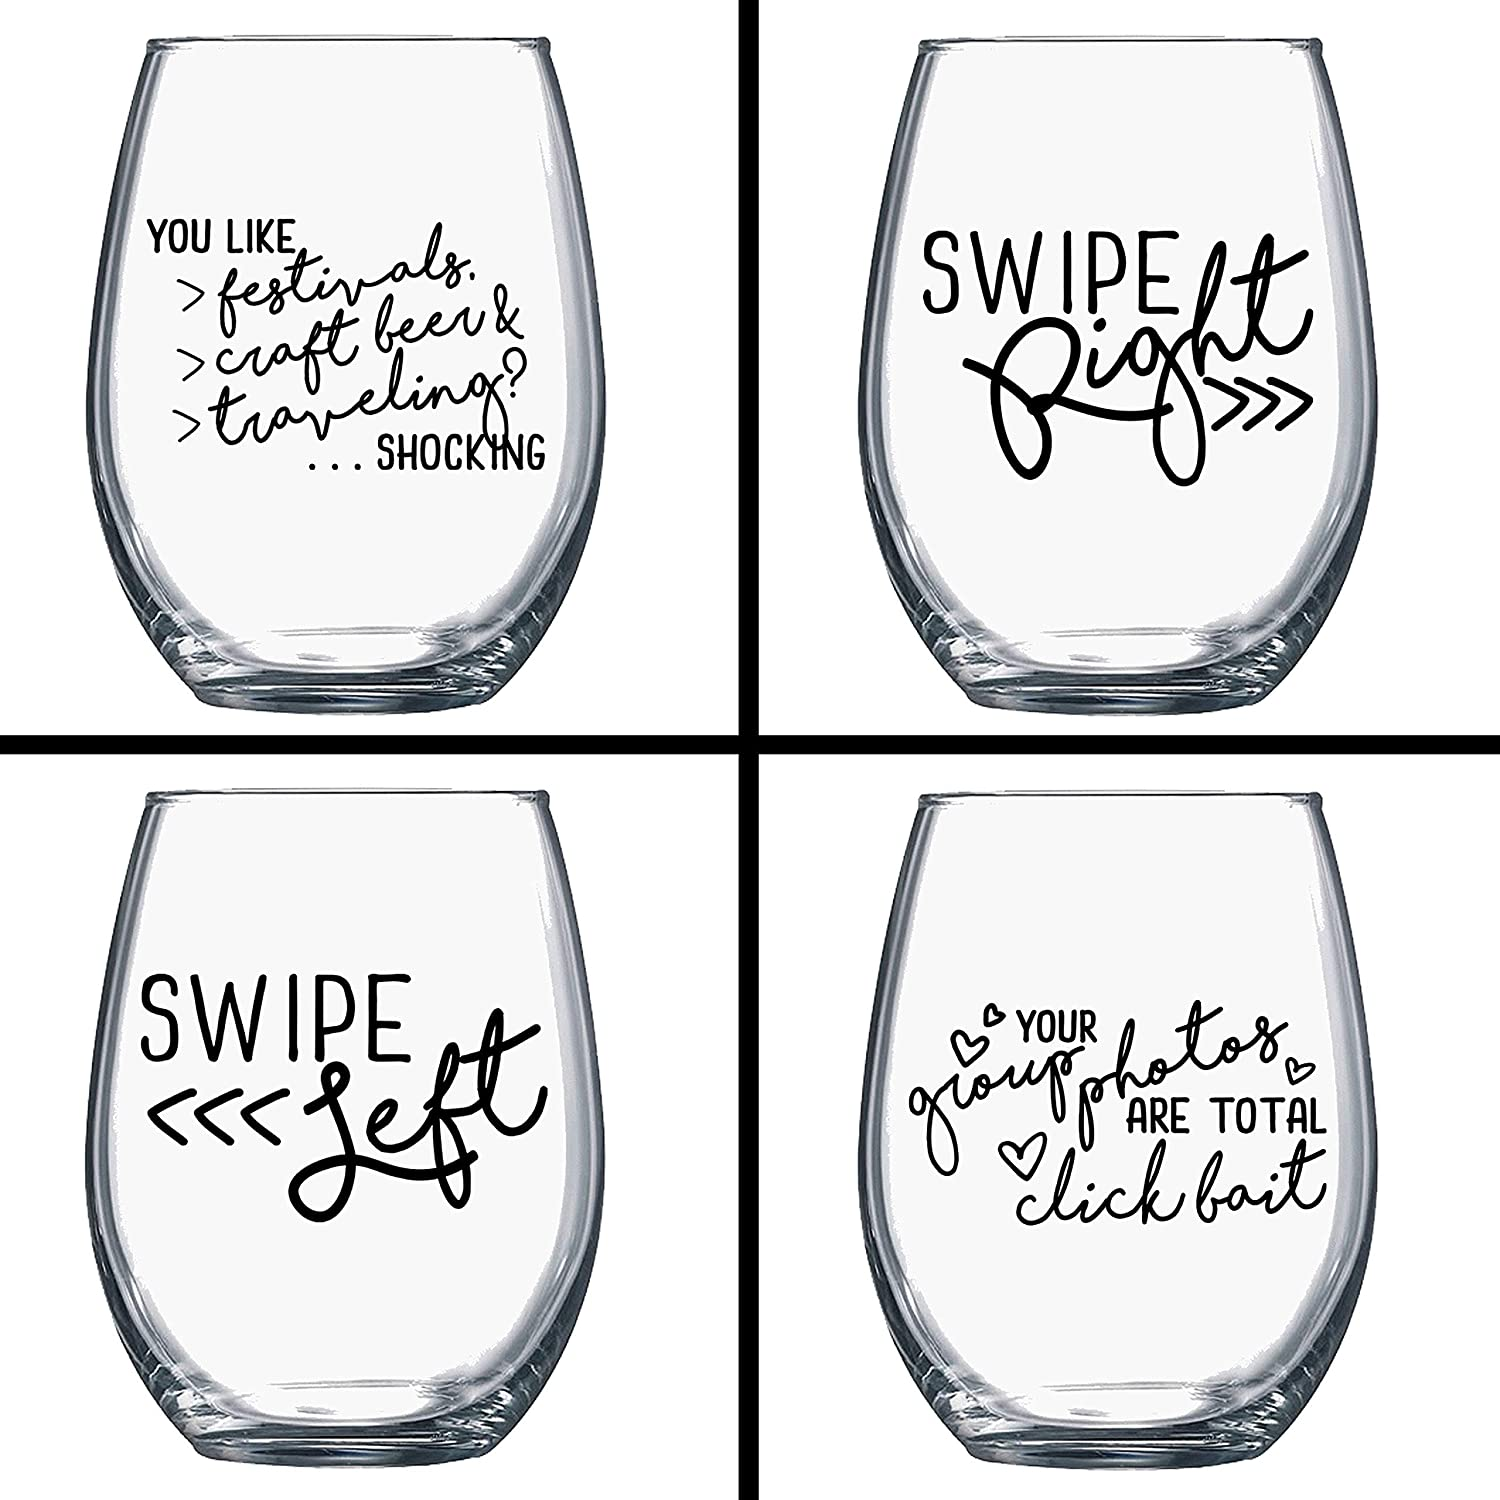 ON SALE! BUY 3 GET 1 FREE - Funny Wine Glasses - Single Ladies Wine Glasses  - Quotes on Wine Glass - Wine Gift - Gift for Her - Gift for Best Friend -  ...